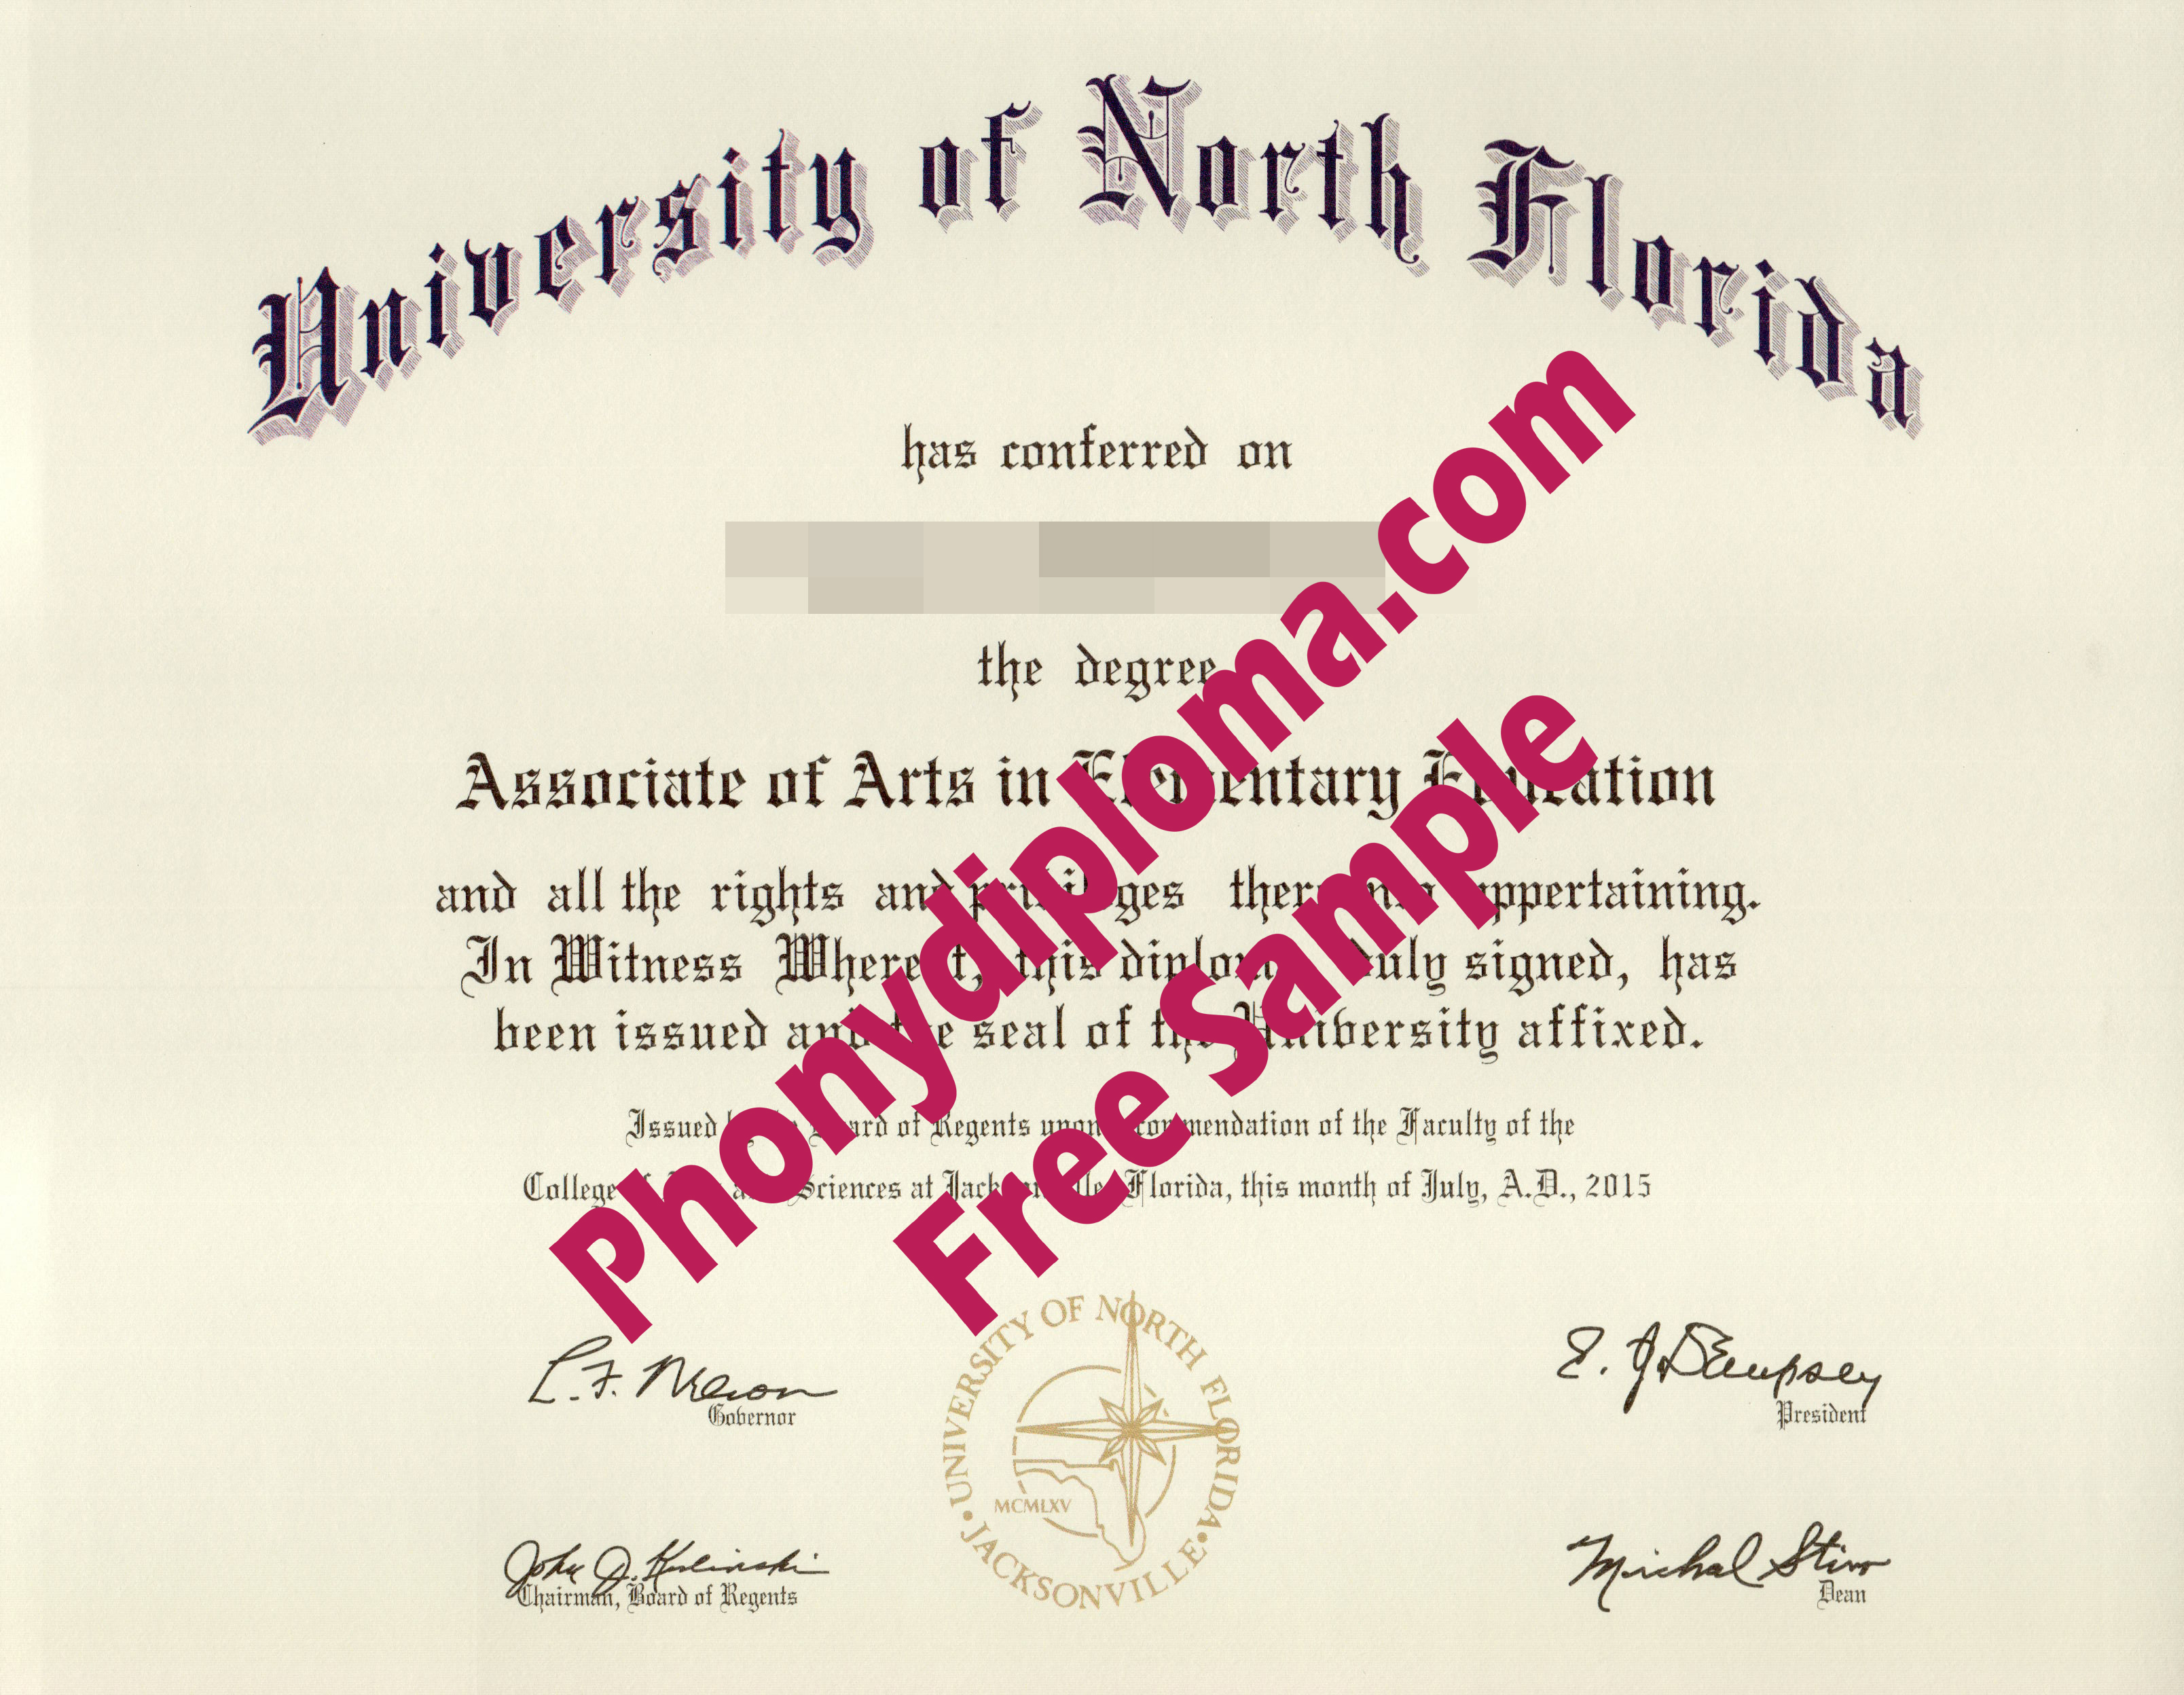 University Of North Florida Free Sample From Phonydiploma